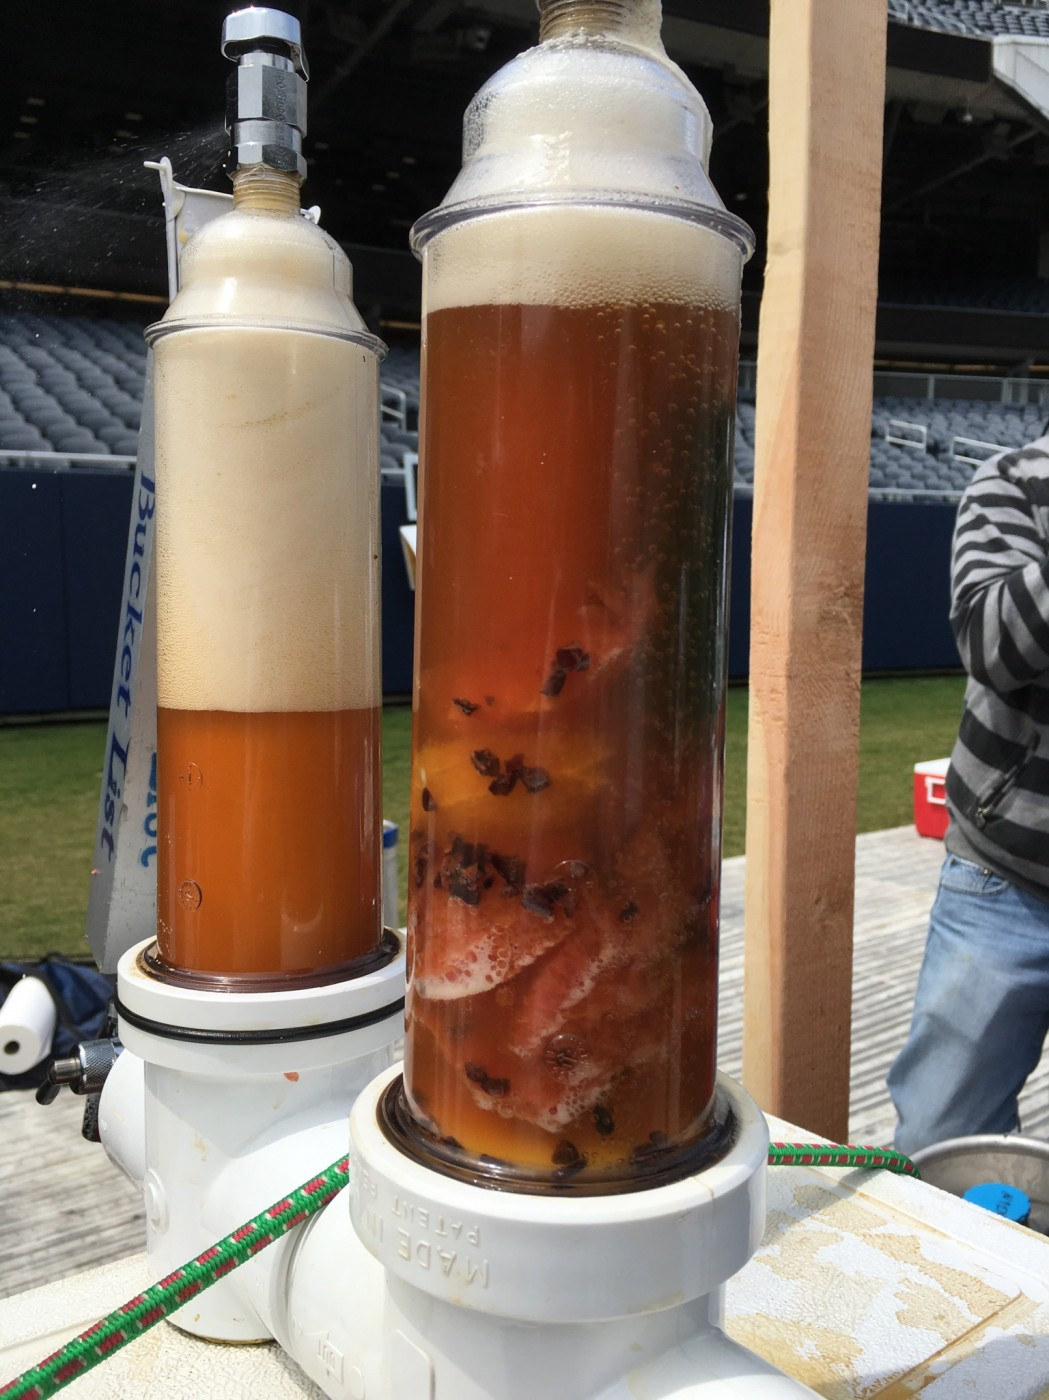 Bucket List is always known for bringing a randall to beer events.